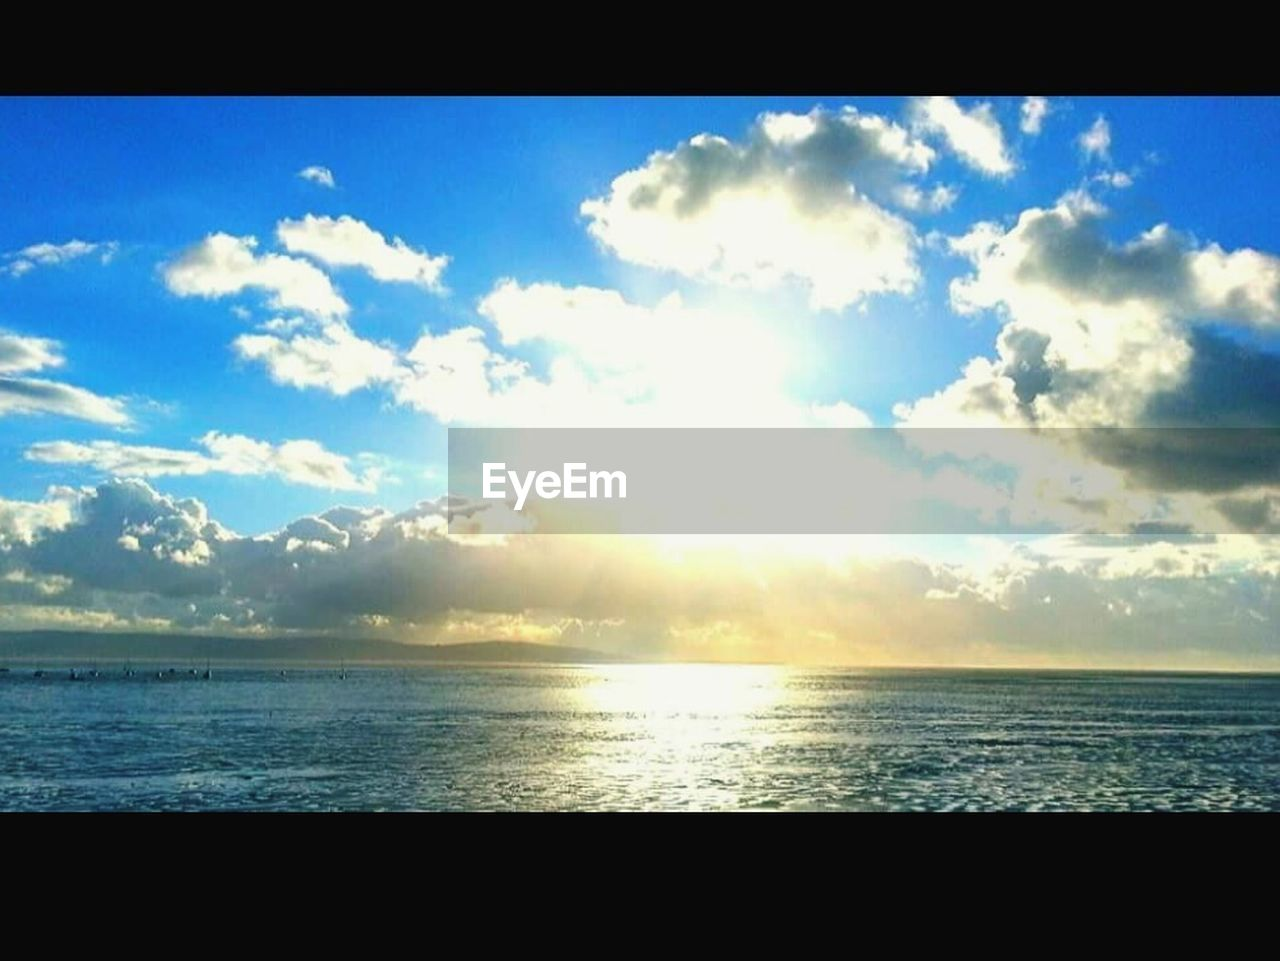 sea, sky, scenics, beauty in nature, tranquil scene, tranquility, nature, horizon over water, cloud - sky, sunlight, no people, beach, outdoors, water, day